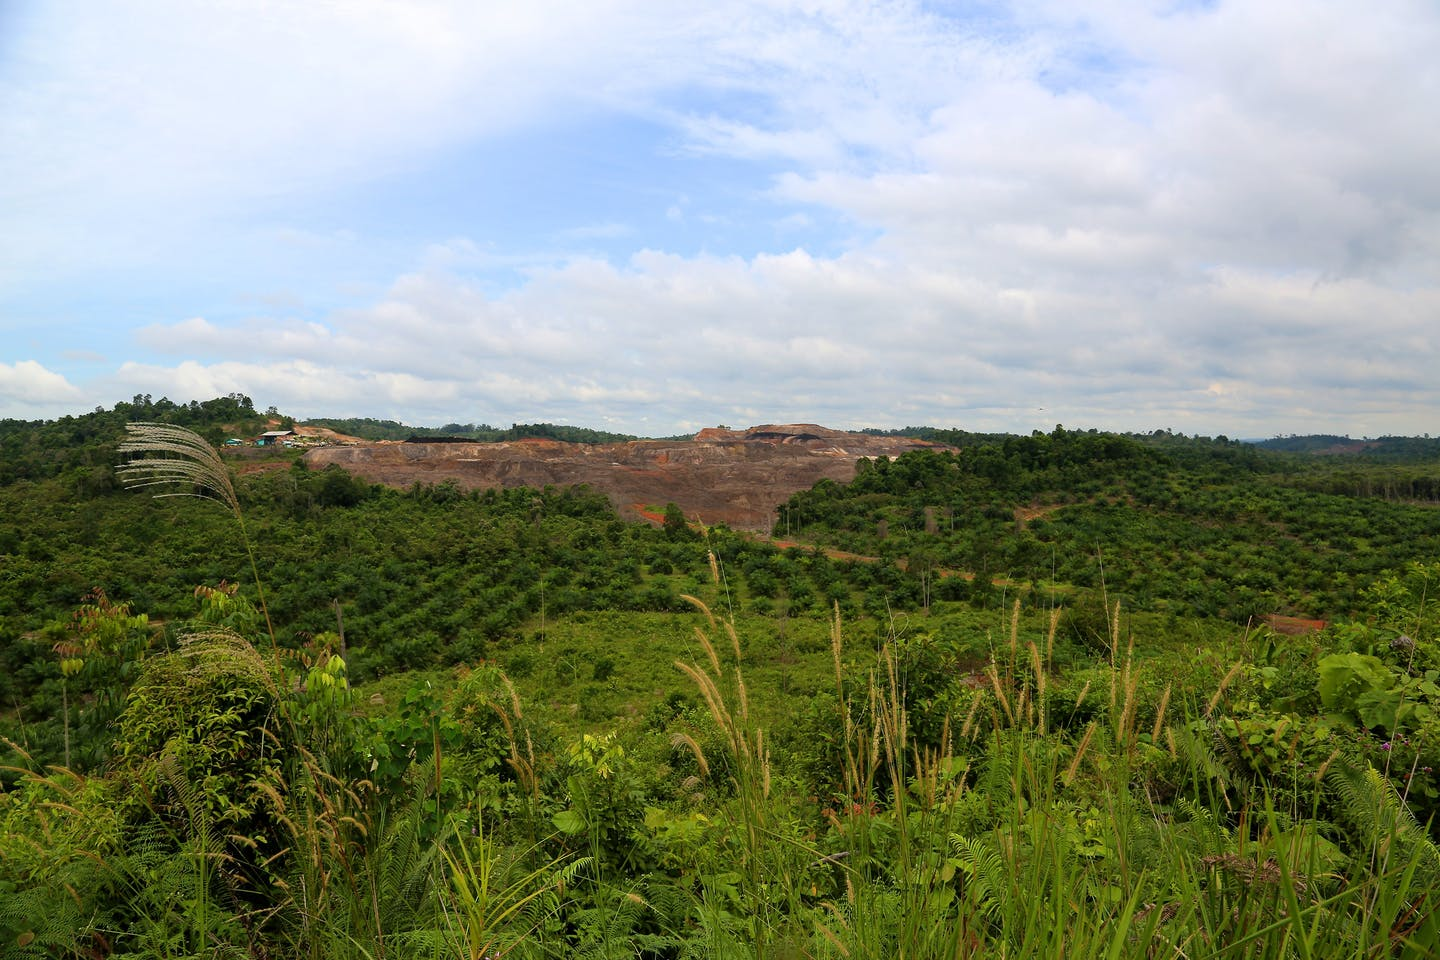 deforested area for palm oil in Kalimantan